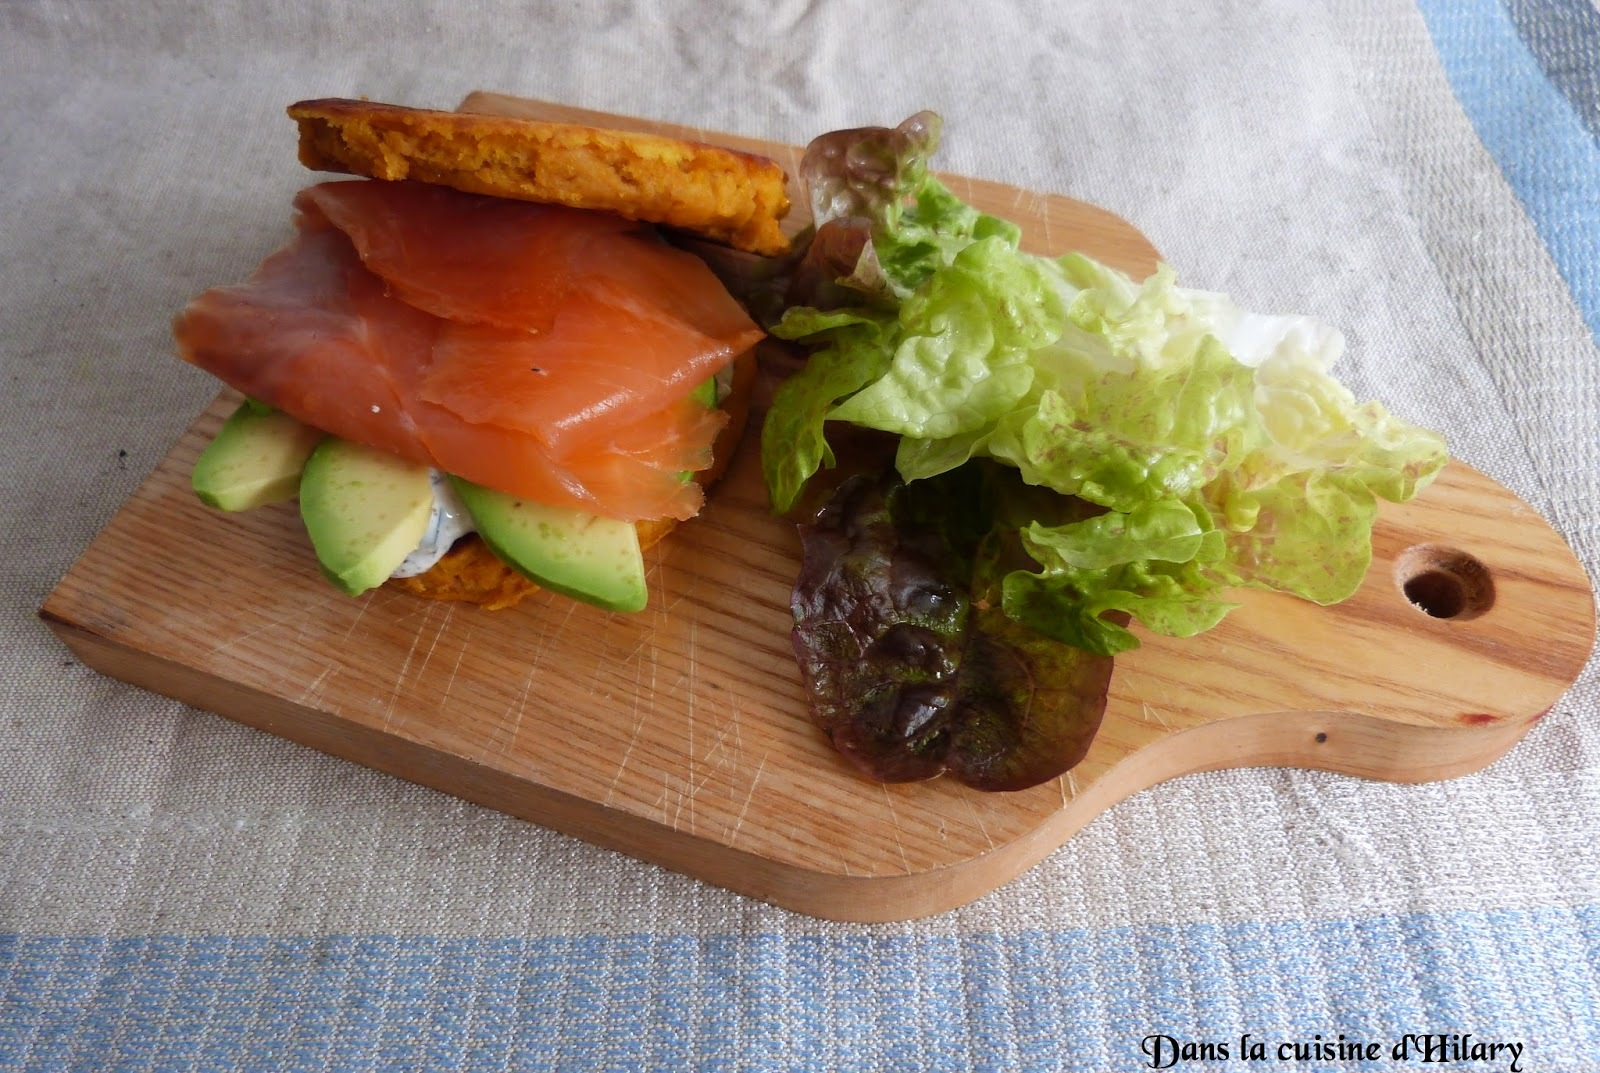 Blini-burger à la patate douce, saumon fumé et avocat / Sweet potato blini-burger with smoked salmon and avocado